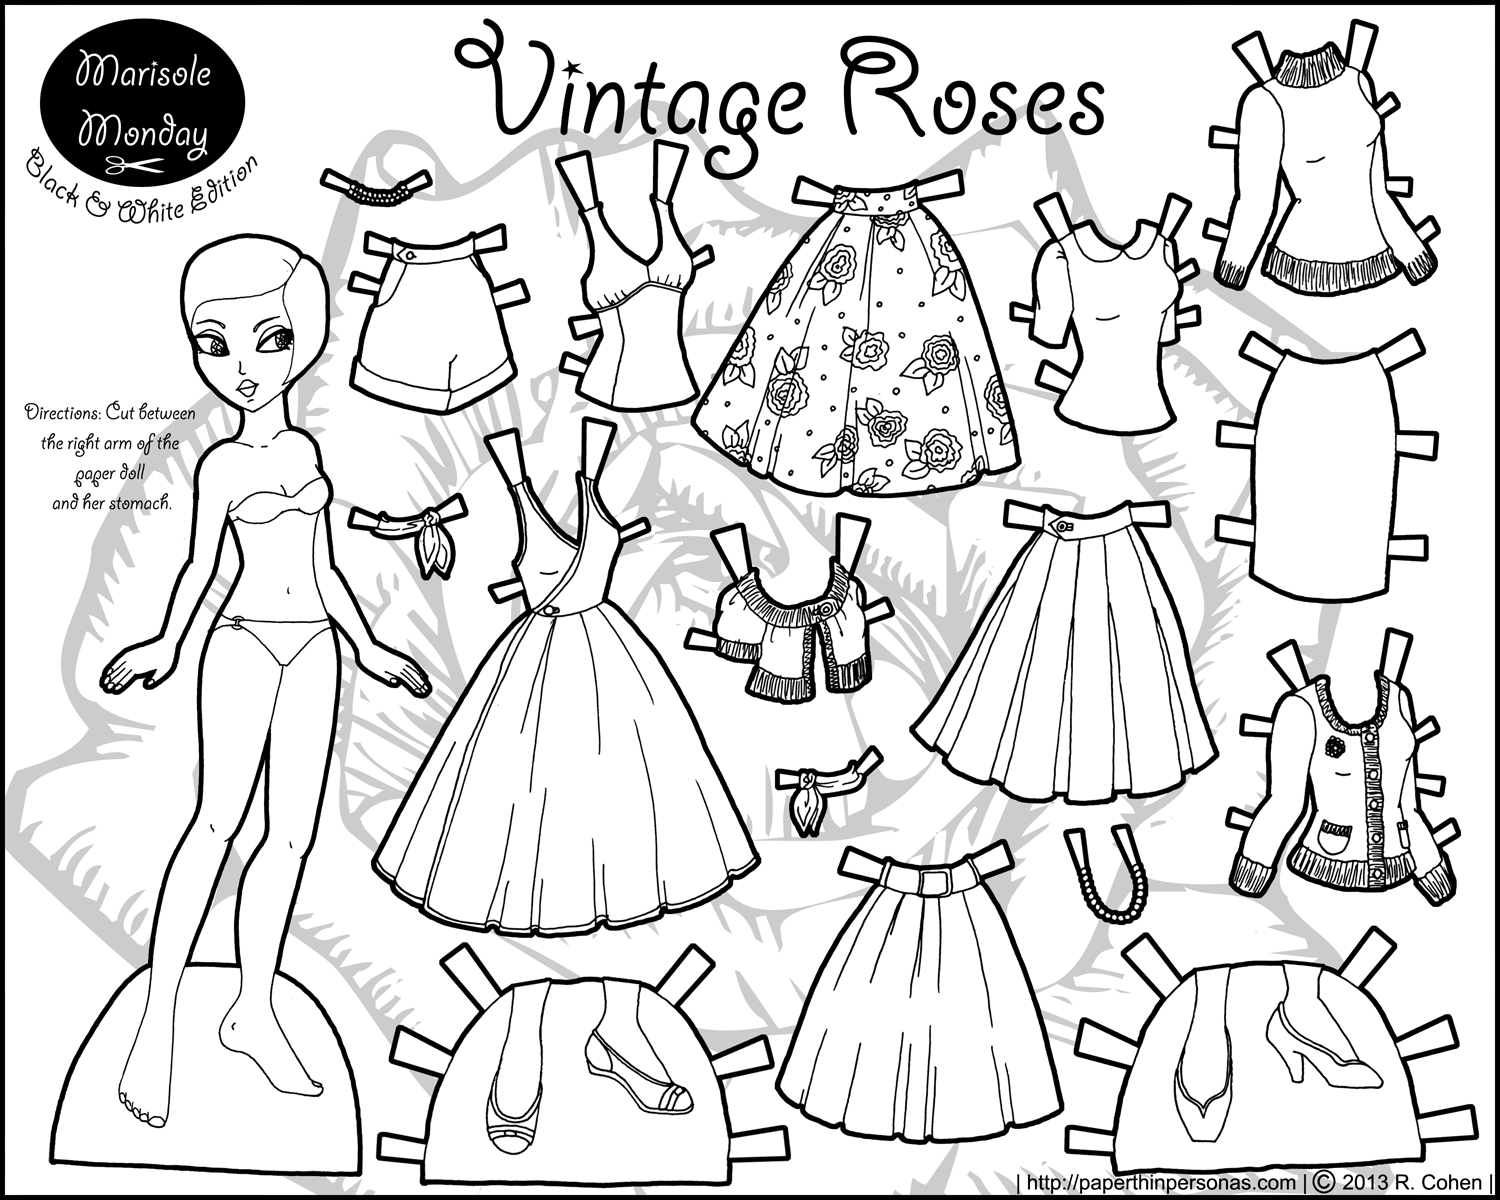 coloring doll print marisole monday vintage roses paper doll template doll print coloring